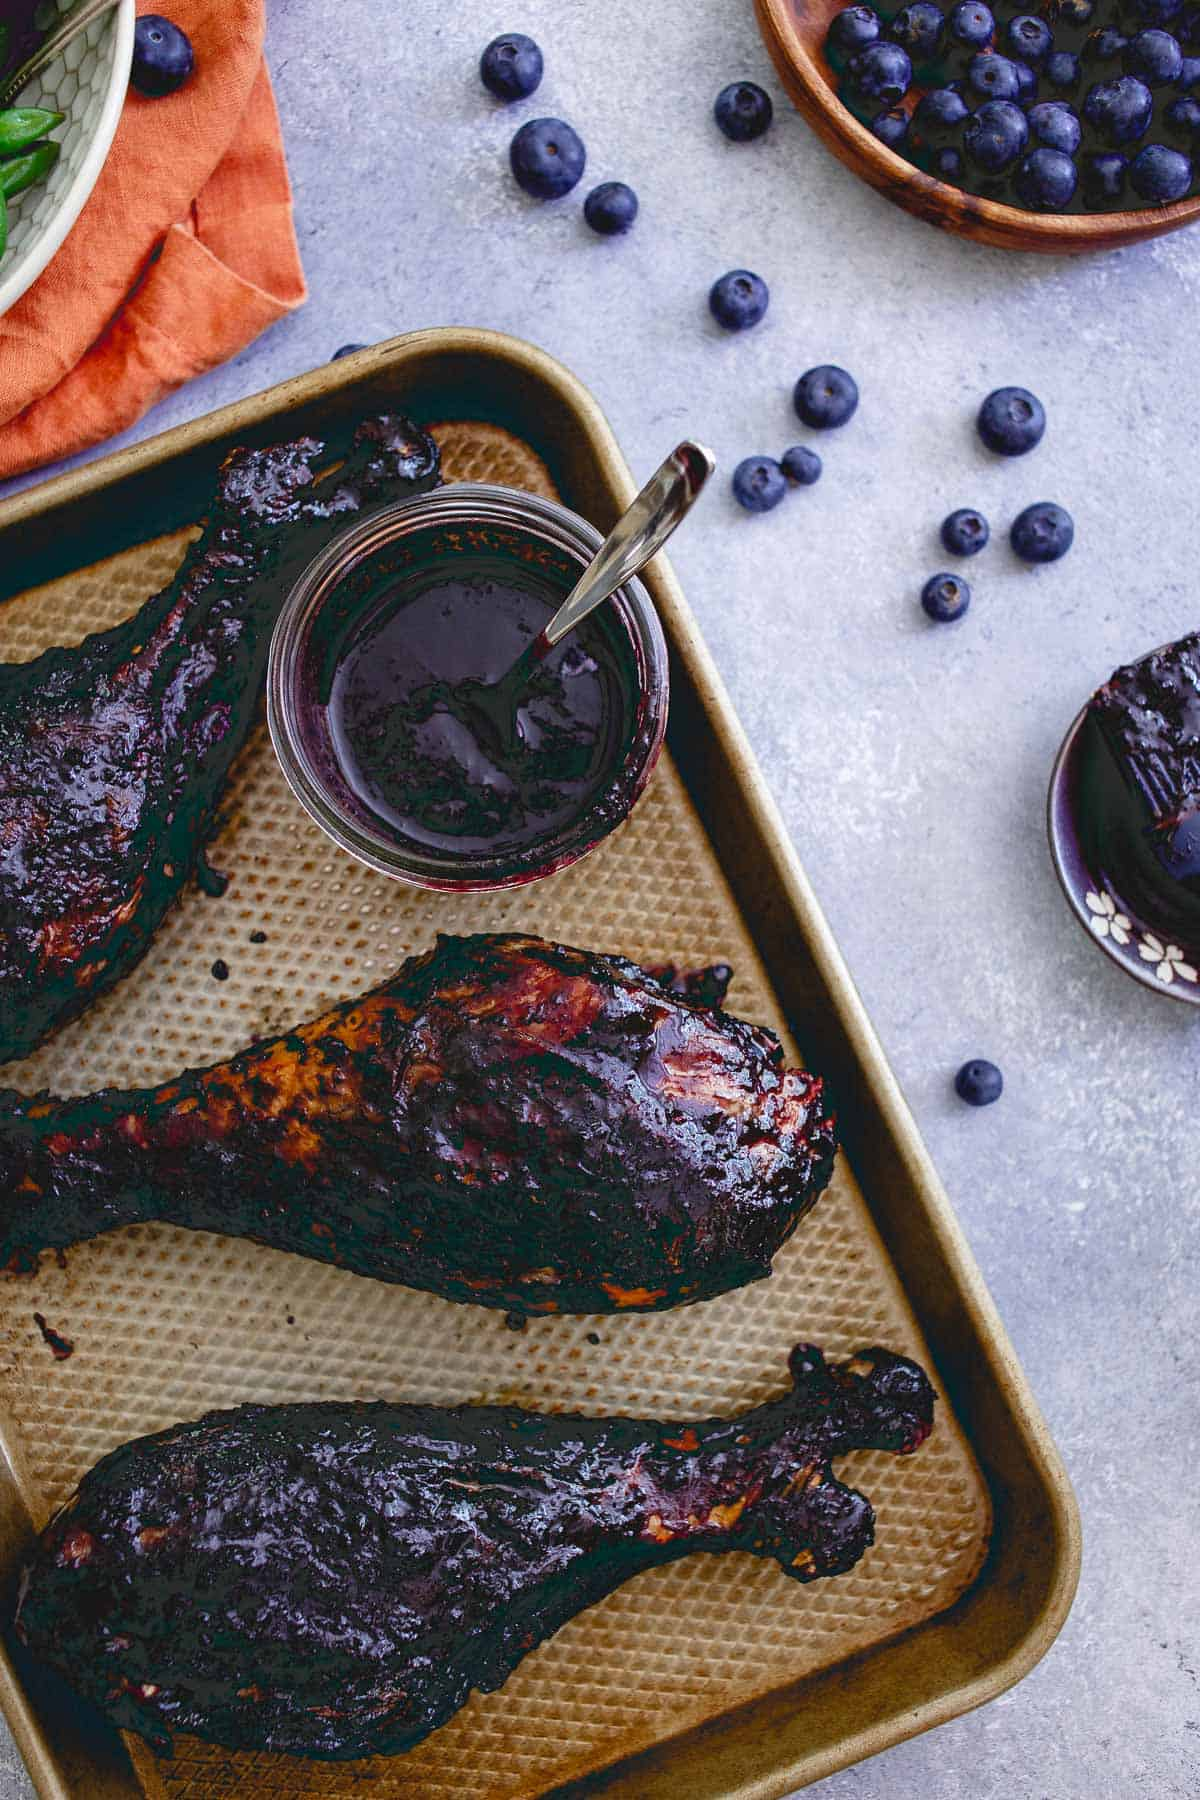 Easy, healthy and with an ingredient list you'll be happy to feed your family, these blueberry balsamic BBQ turkey legs are a great summer meal!